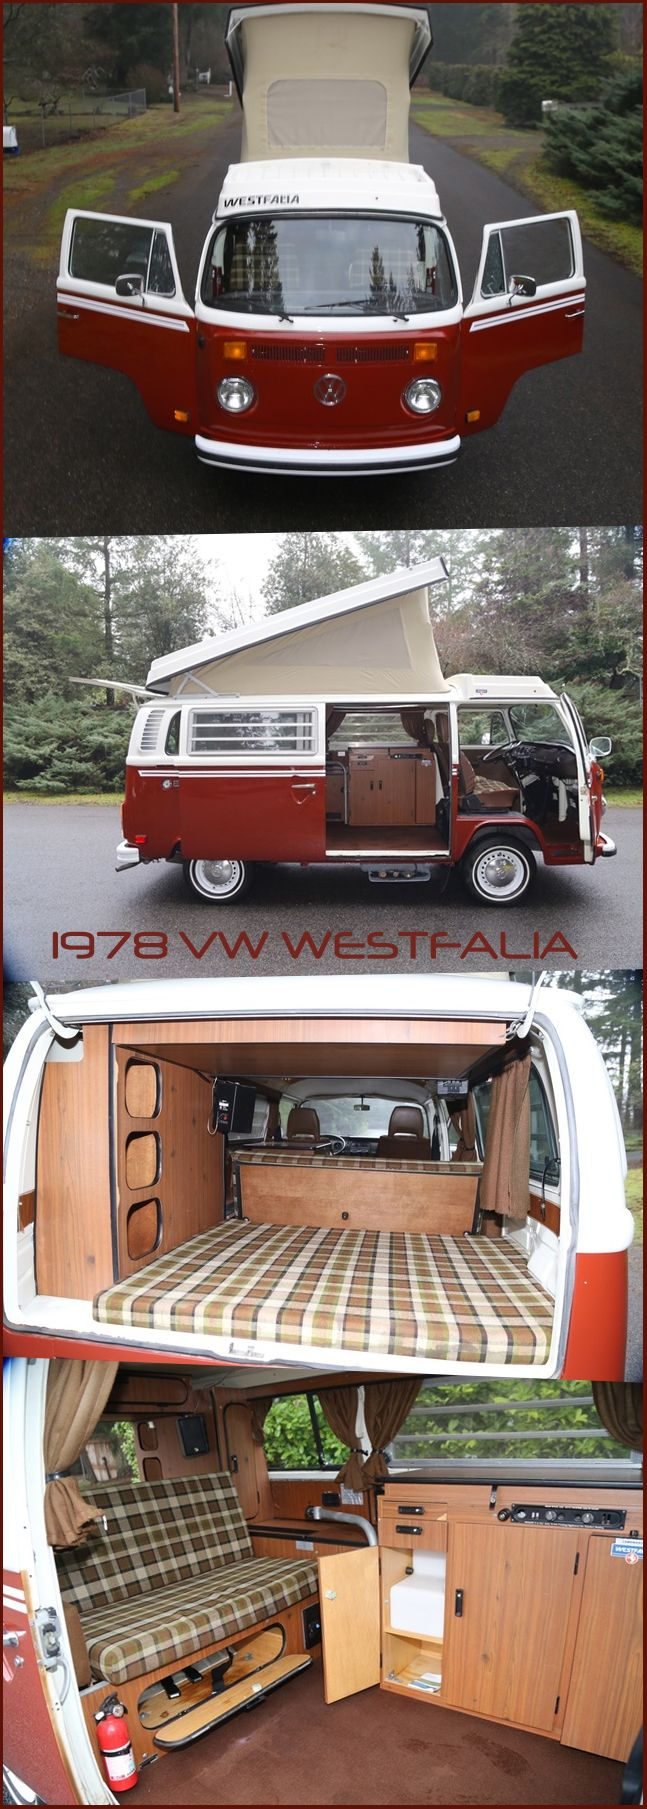 1978 volkswagen westfalia bus camper update the colour schemes and fabric and this would be lush